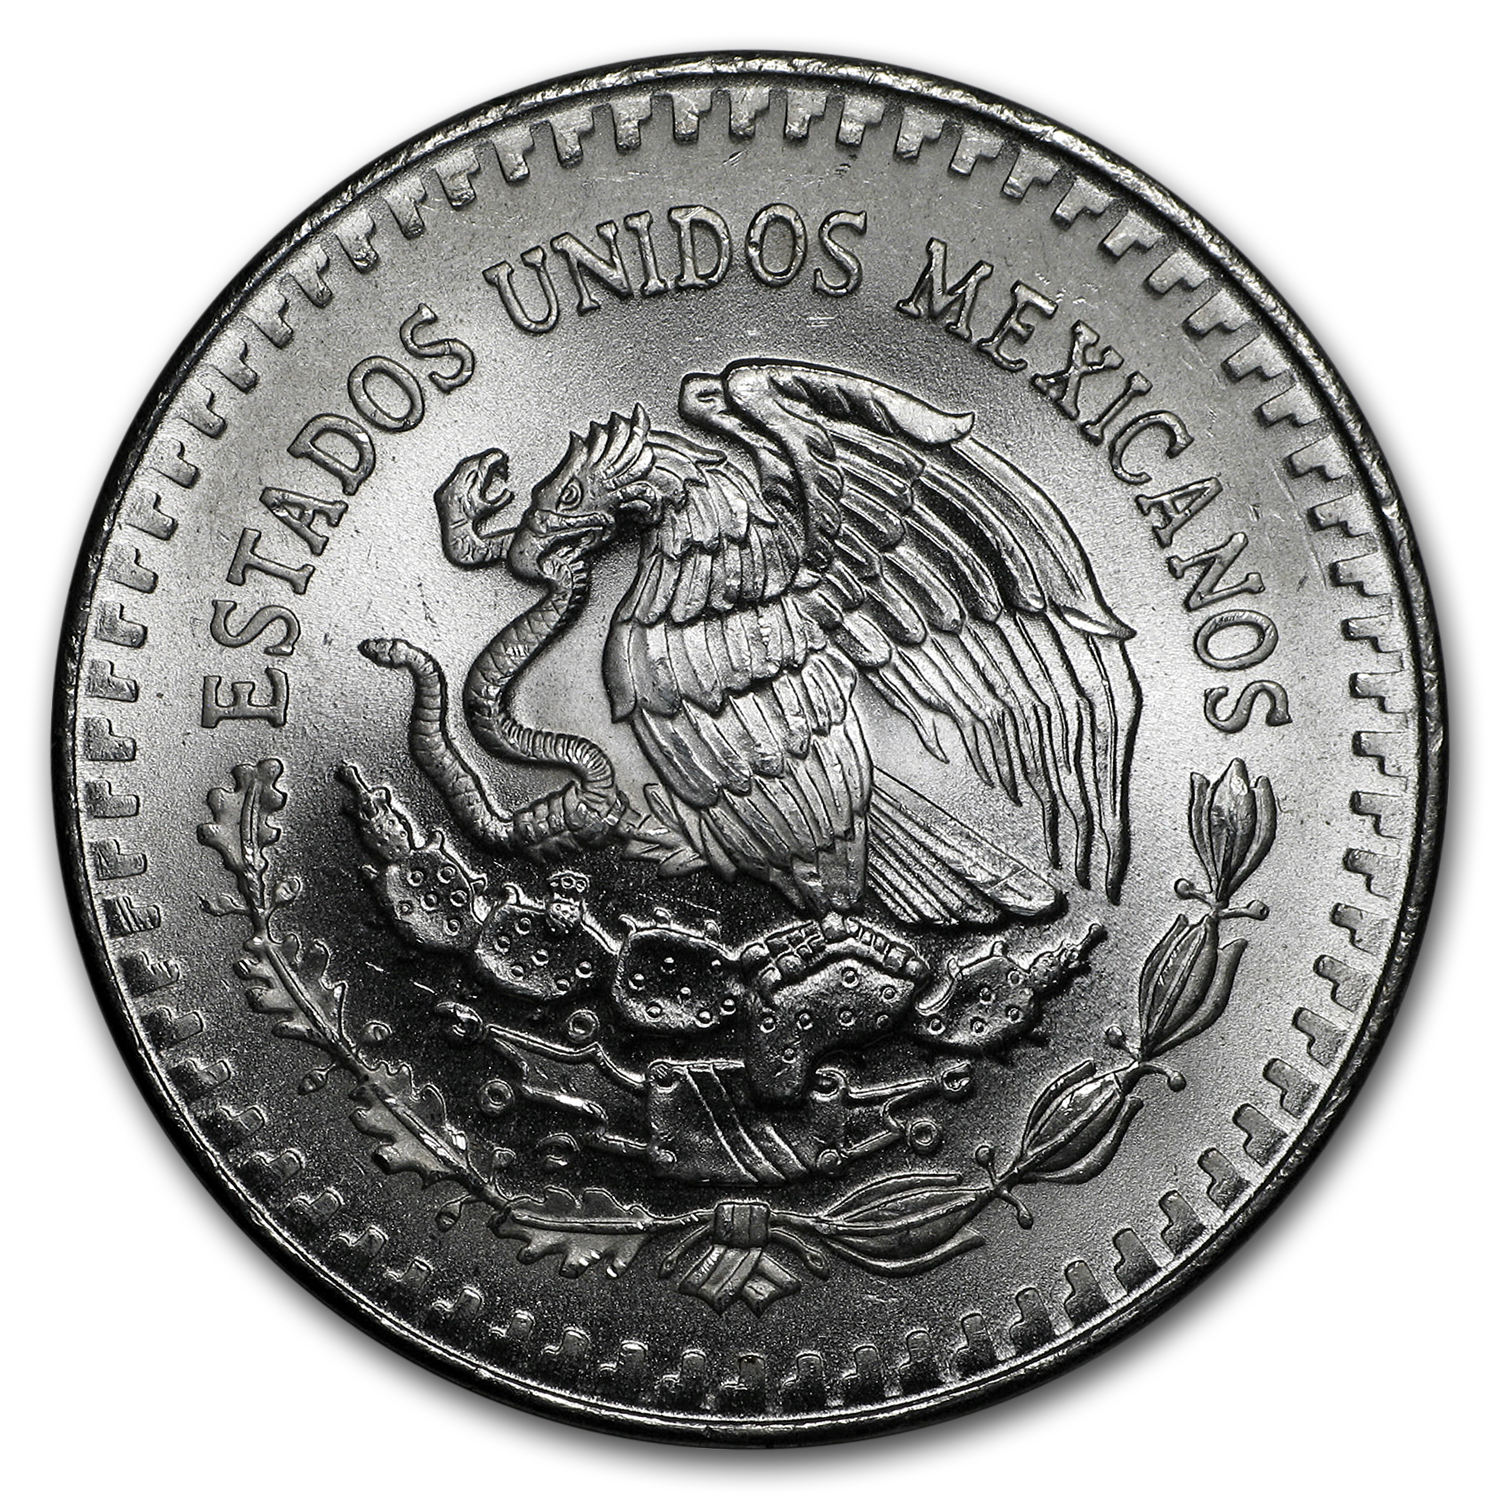 1987 1 oz Silver Mexican Libertad (Brilliant Uncirculated)